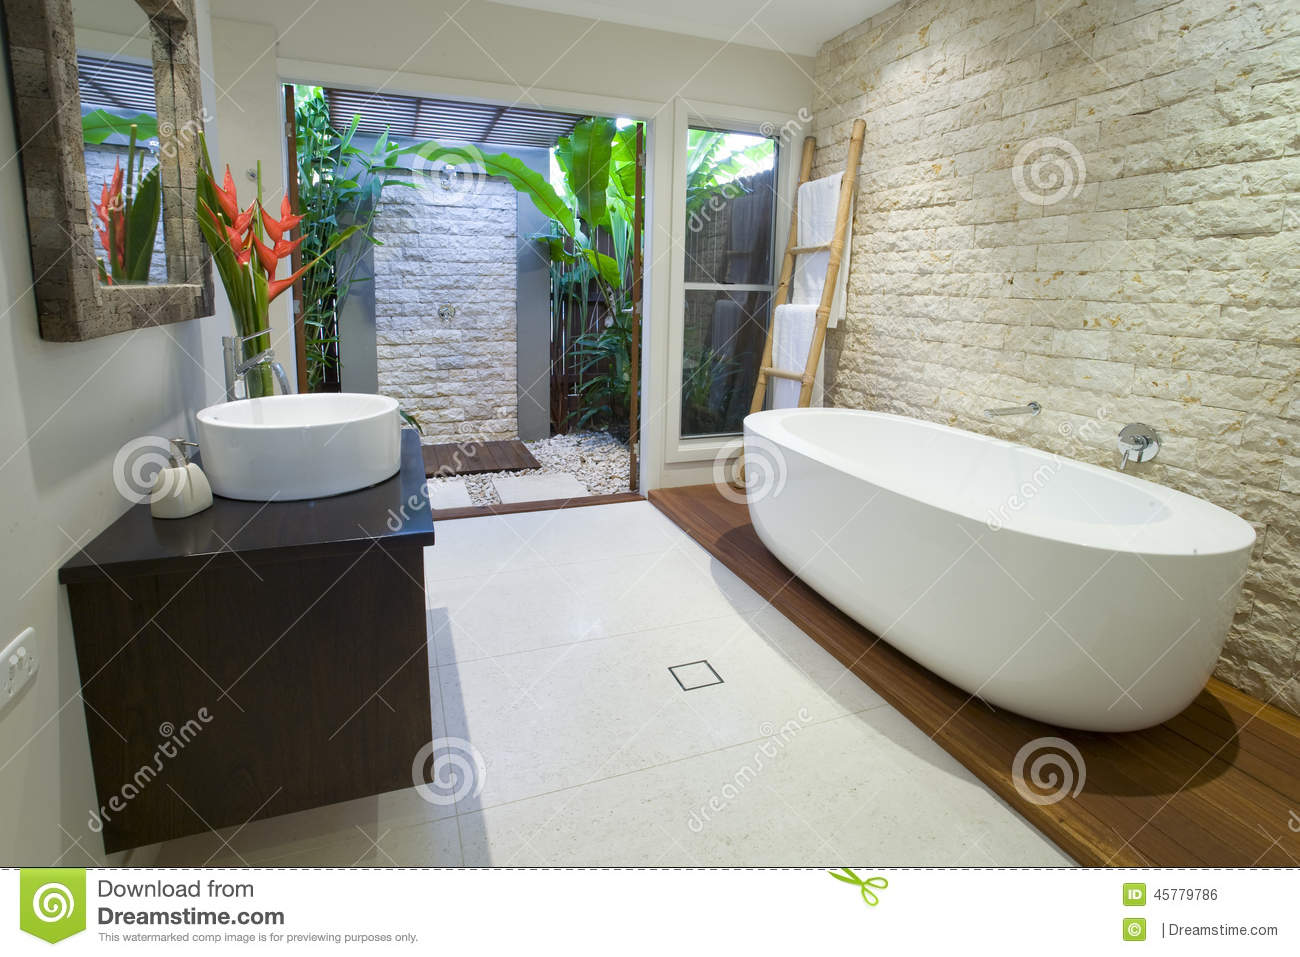 Modern Asian Bathroom With Timber Deck. Stock Photo - Image of ...